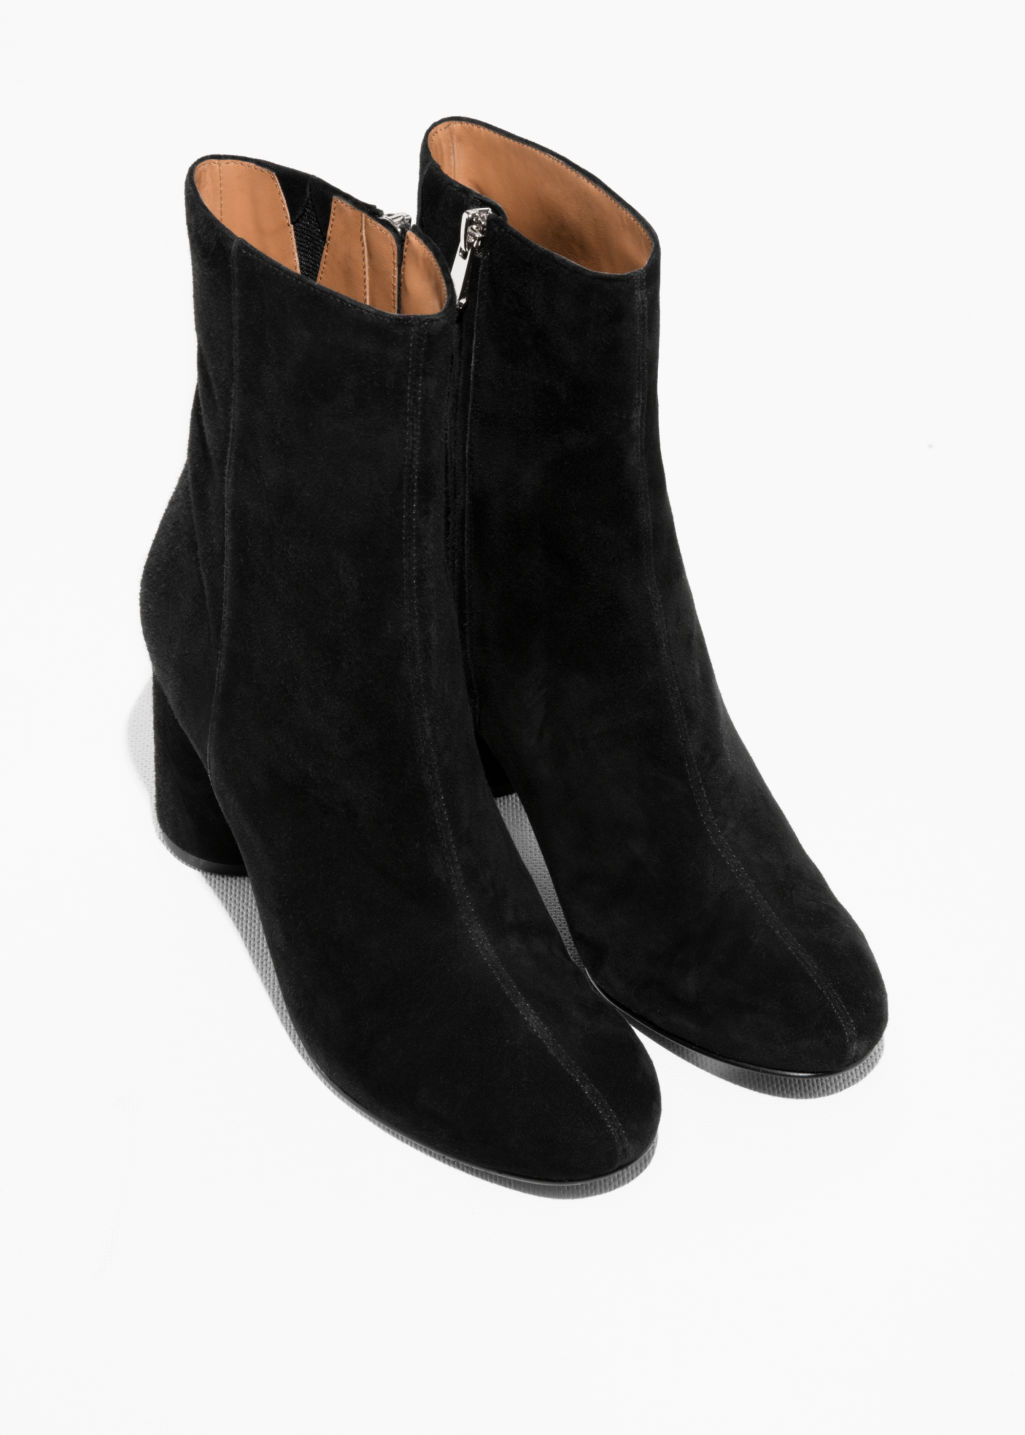 & OTHER STORIES High shaft ankle boot